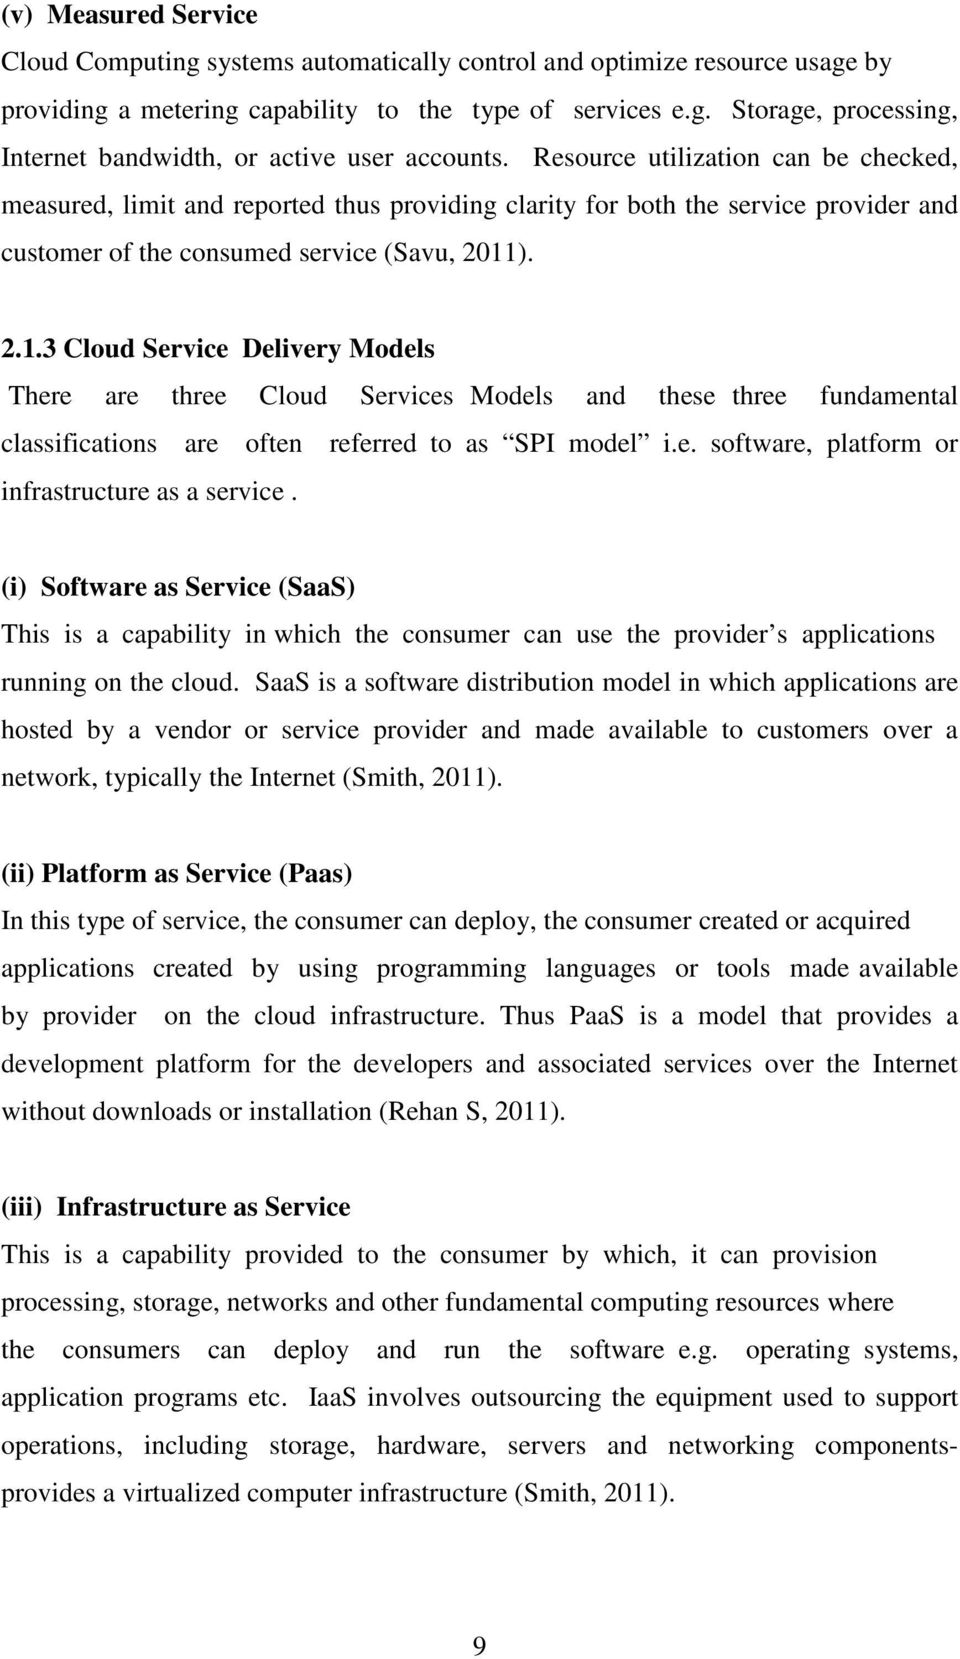 ). 2.1.3 Cloud Service Delivery Models There are three Cloud Services Models and these three fundamental classifications are often referred to as SPI model i.e. software, platform or infrastructure as a service.